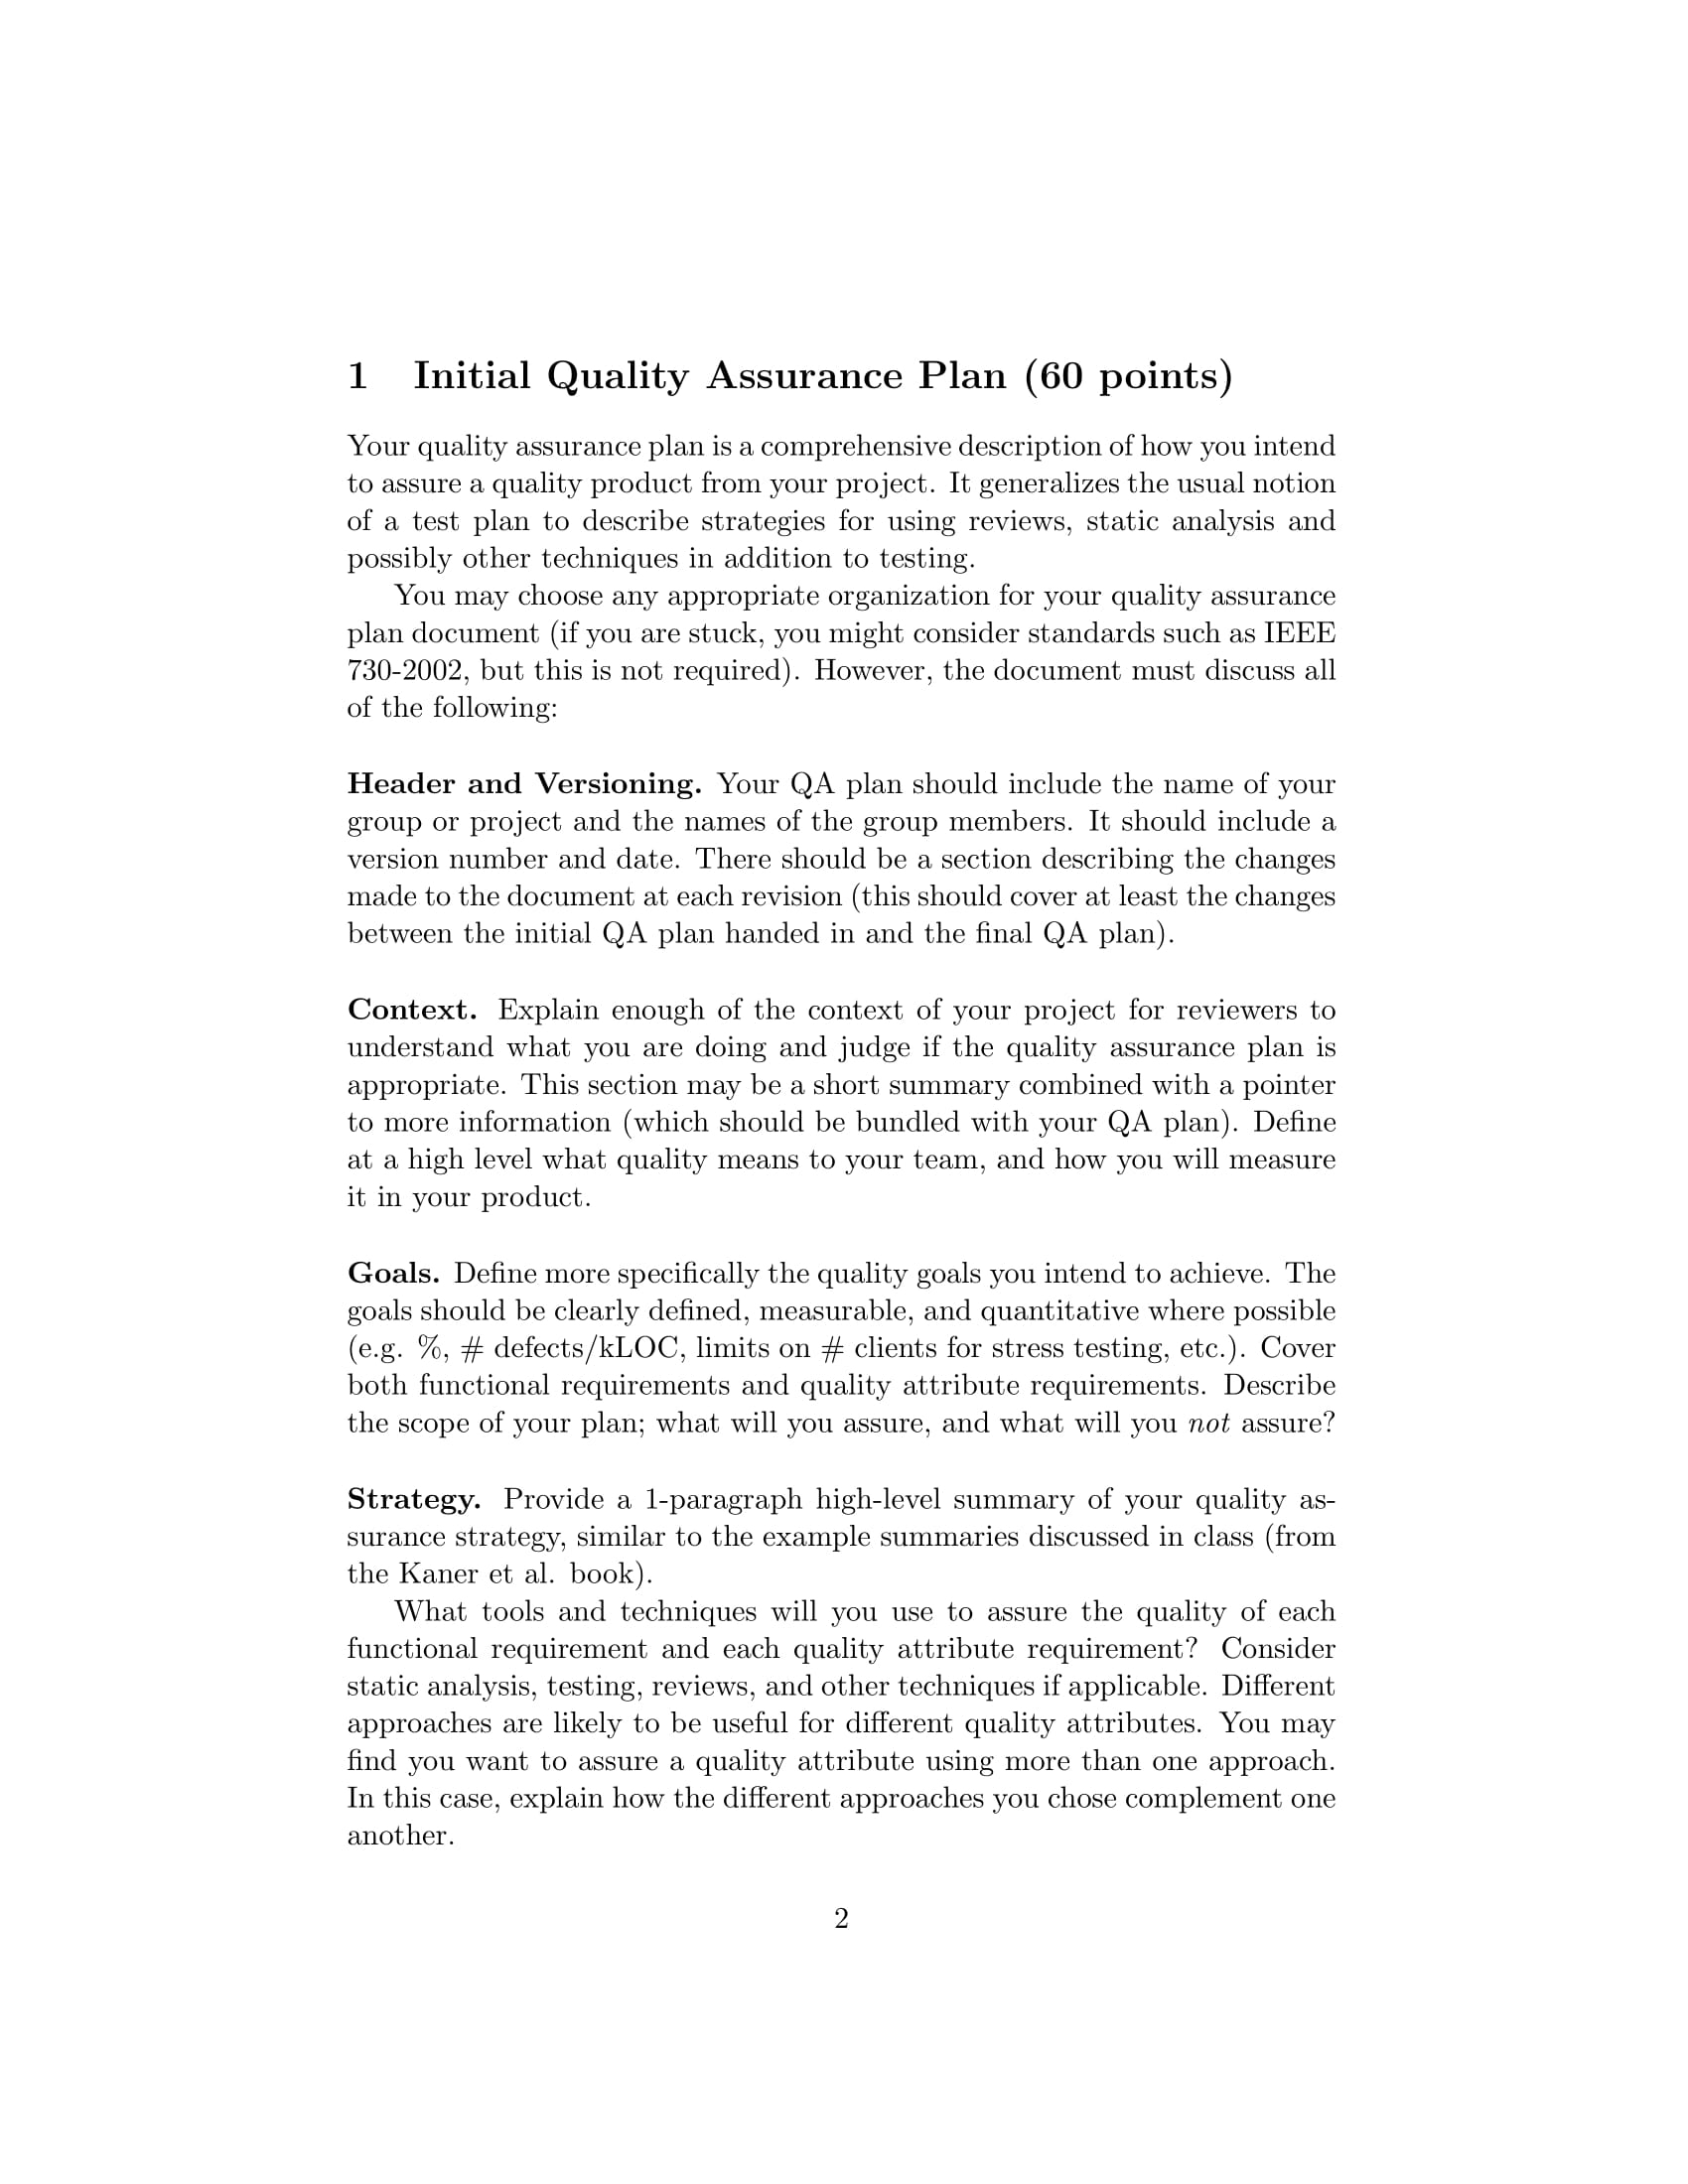 final project software quality assurance plan example